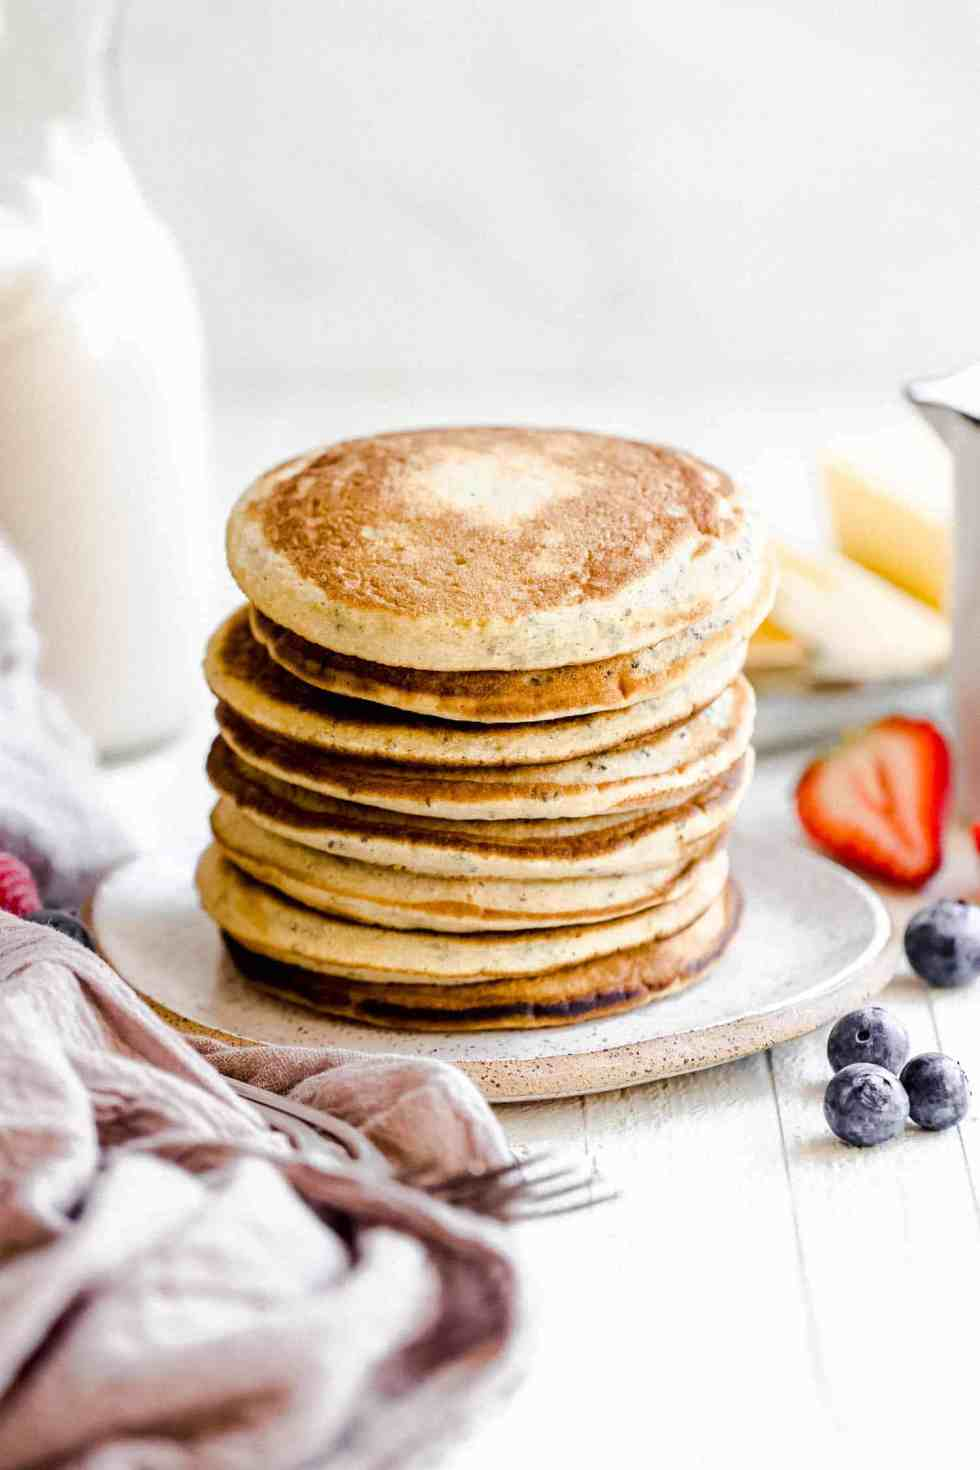 a stack of keto coconut flour pancakes on a plate